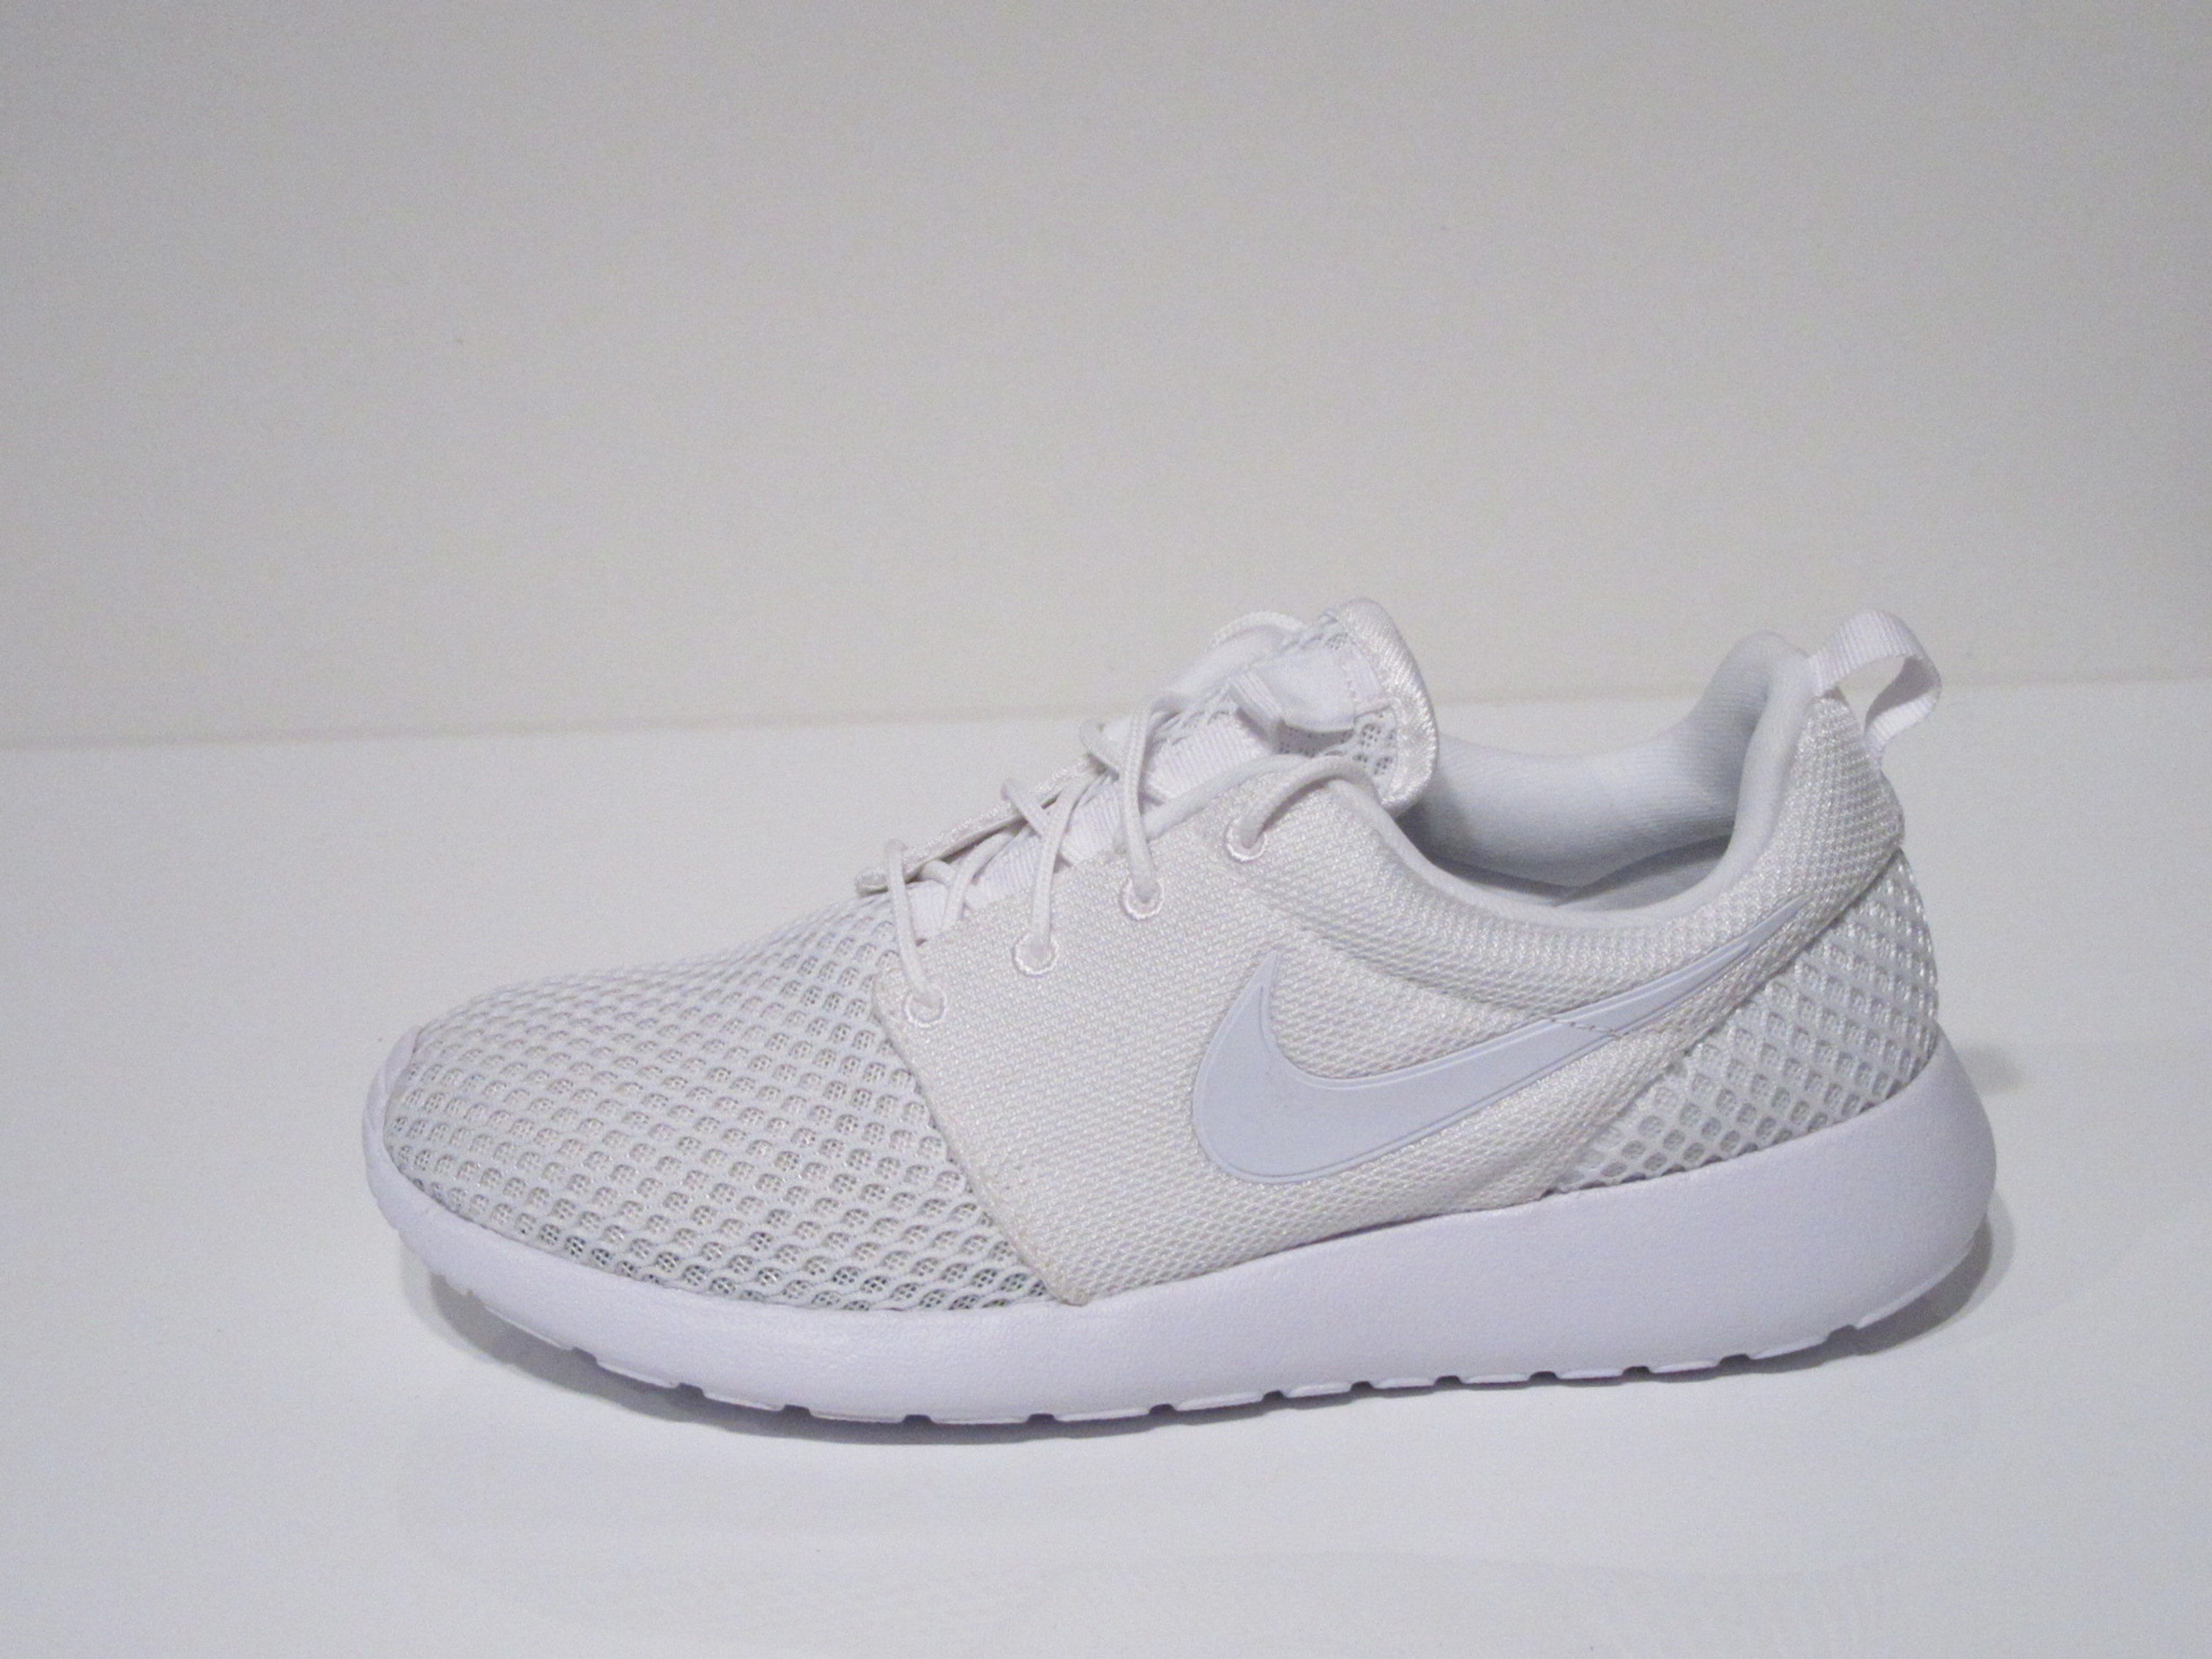 huge discount dc07d 234a9 Nike Roshe One SE Running Sneakers für Herren in weiss 102 WHITE WHITE-PURE